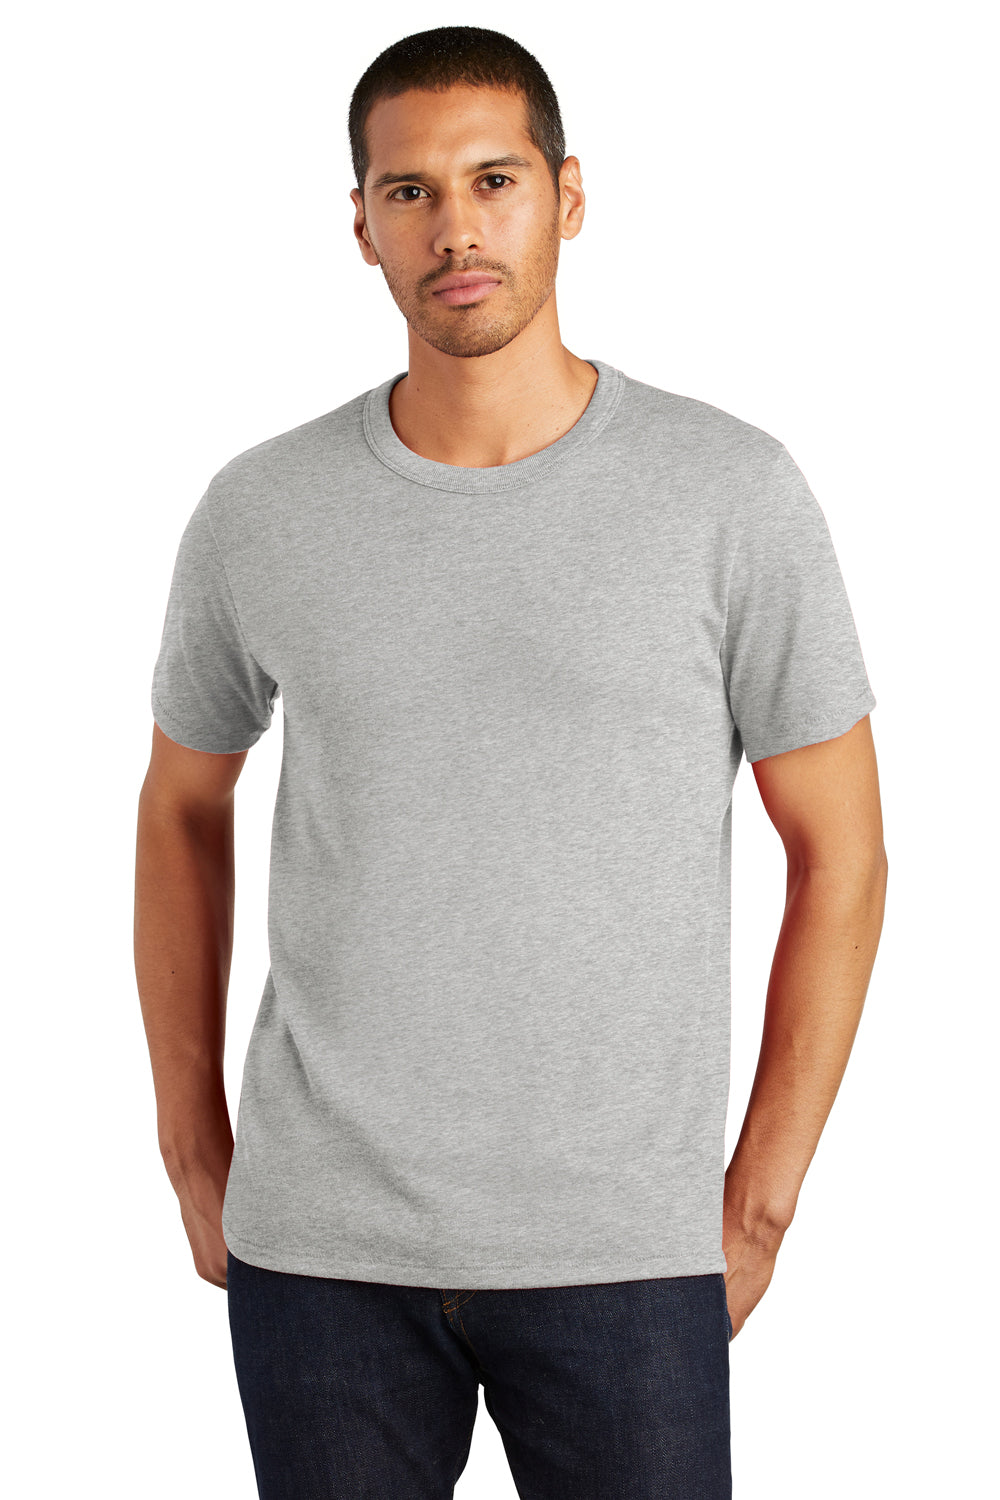 Alternative AA5050 Mens The Keeper Vintage Short Sleeve Crewneck T-Shirt Silver Grey Front